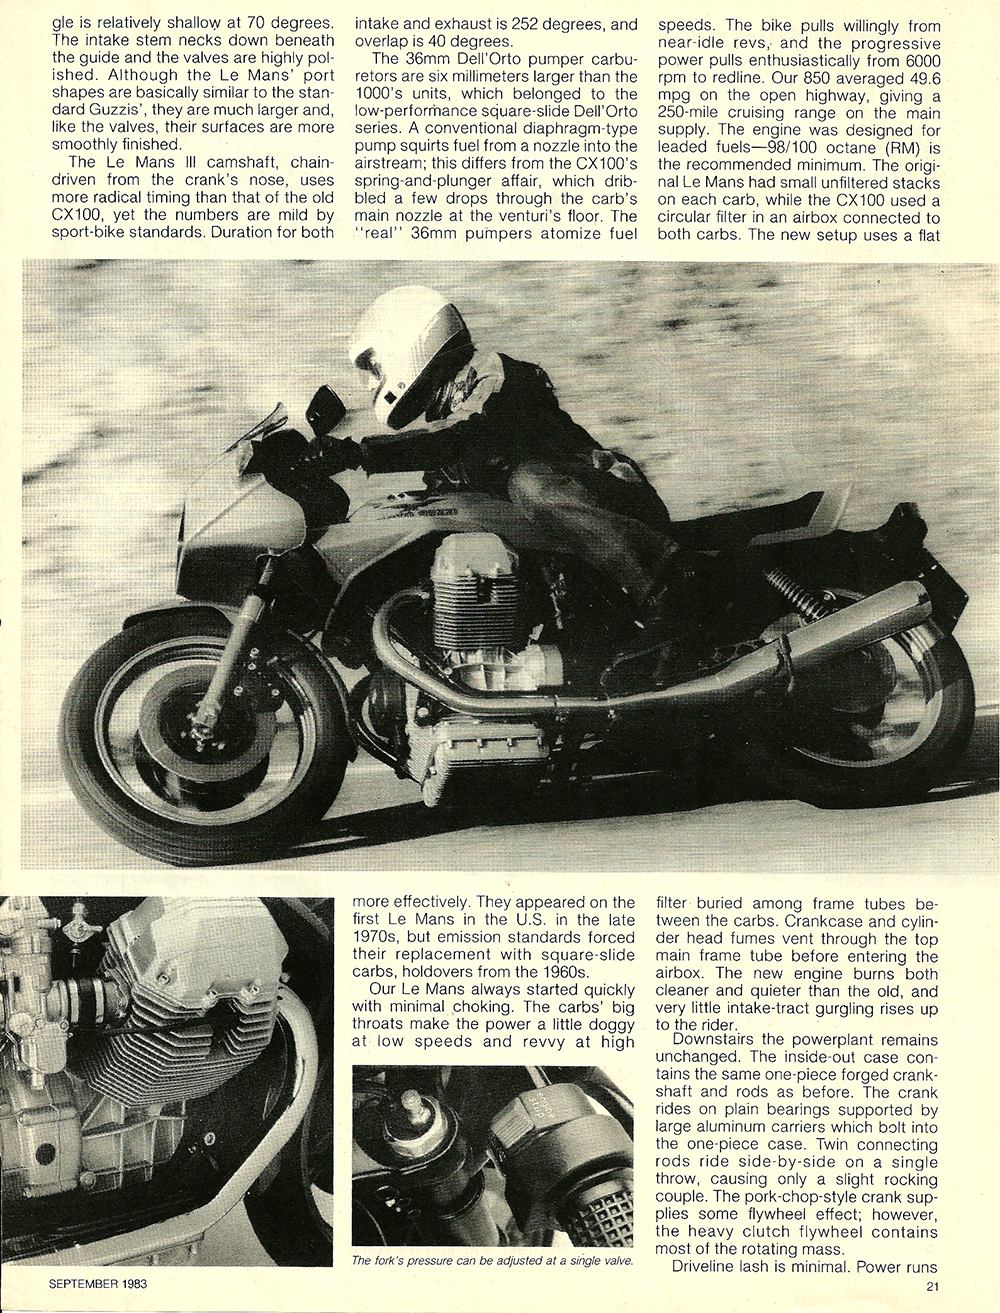 1983 Moto Guzzi 850 Lemans 3 road test 4.jpg